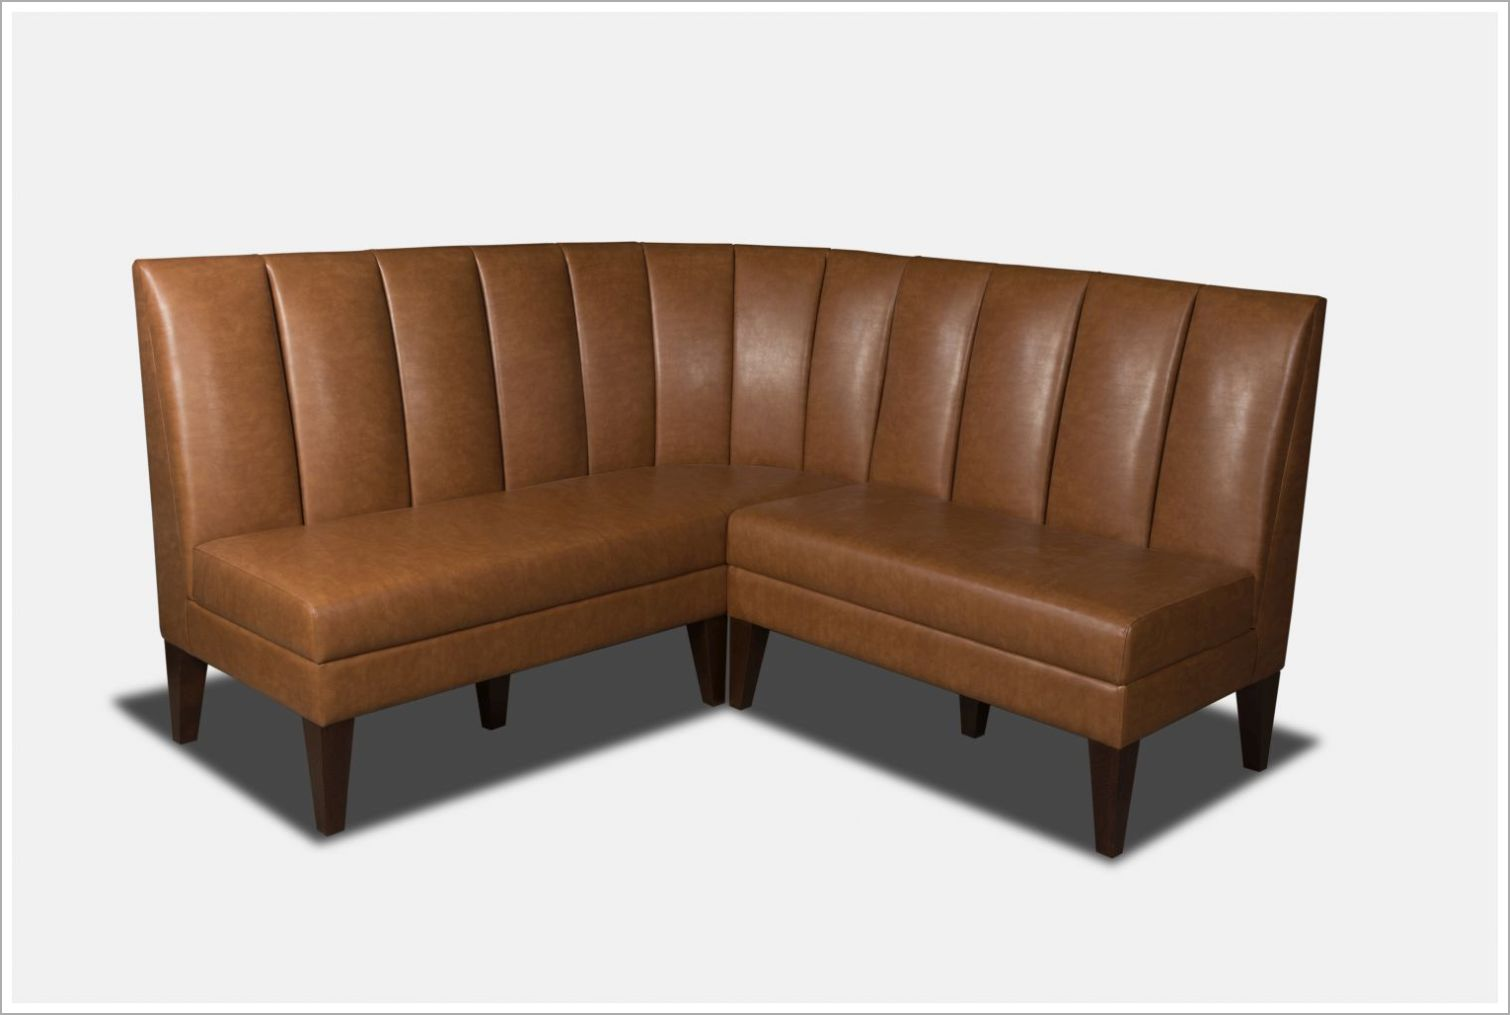 Custom Upholstered Banquette Seating